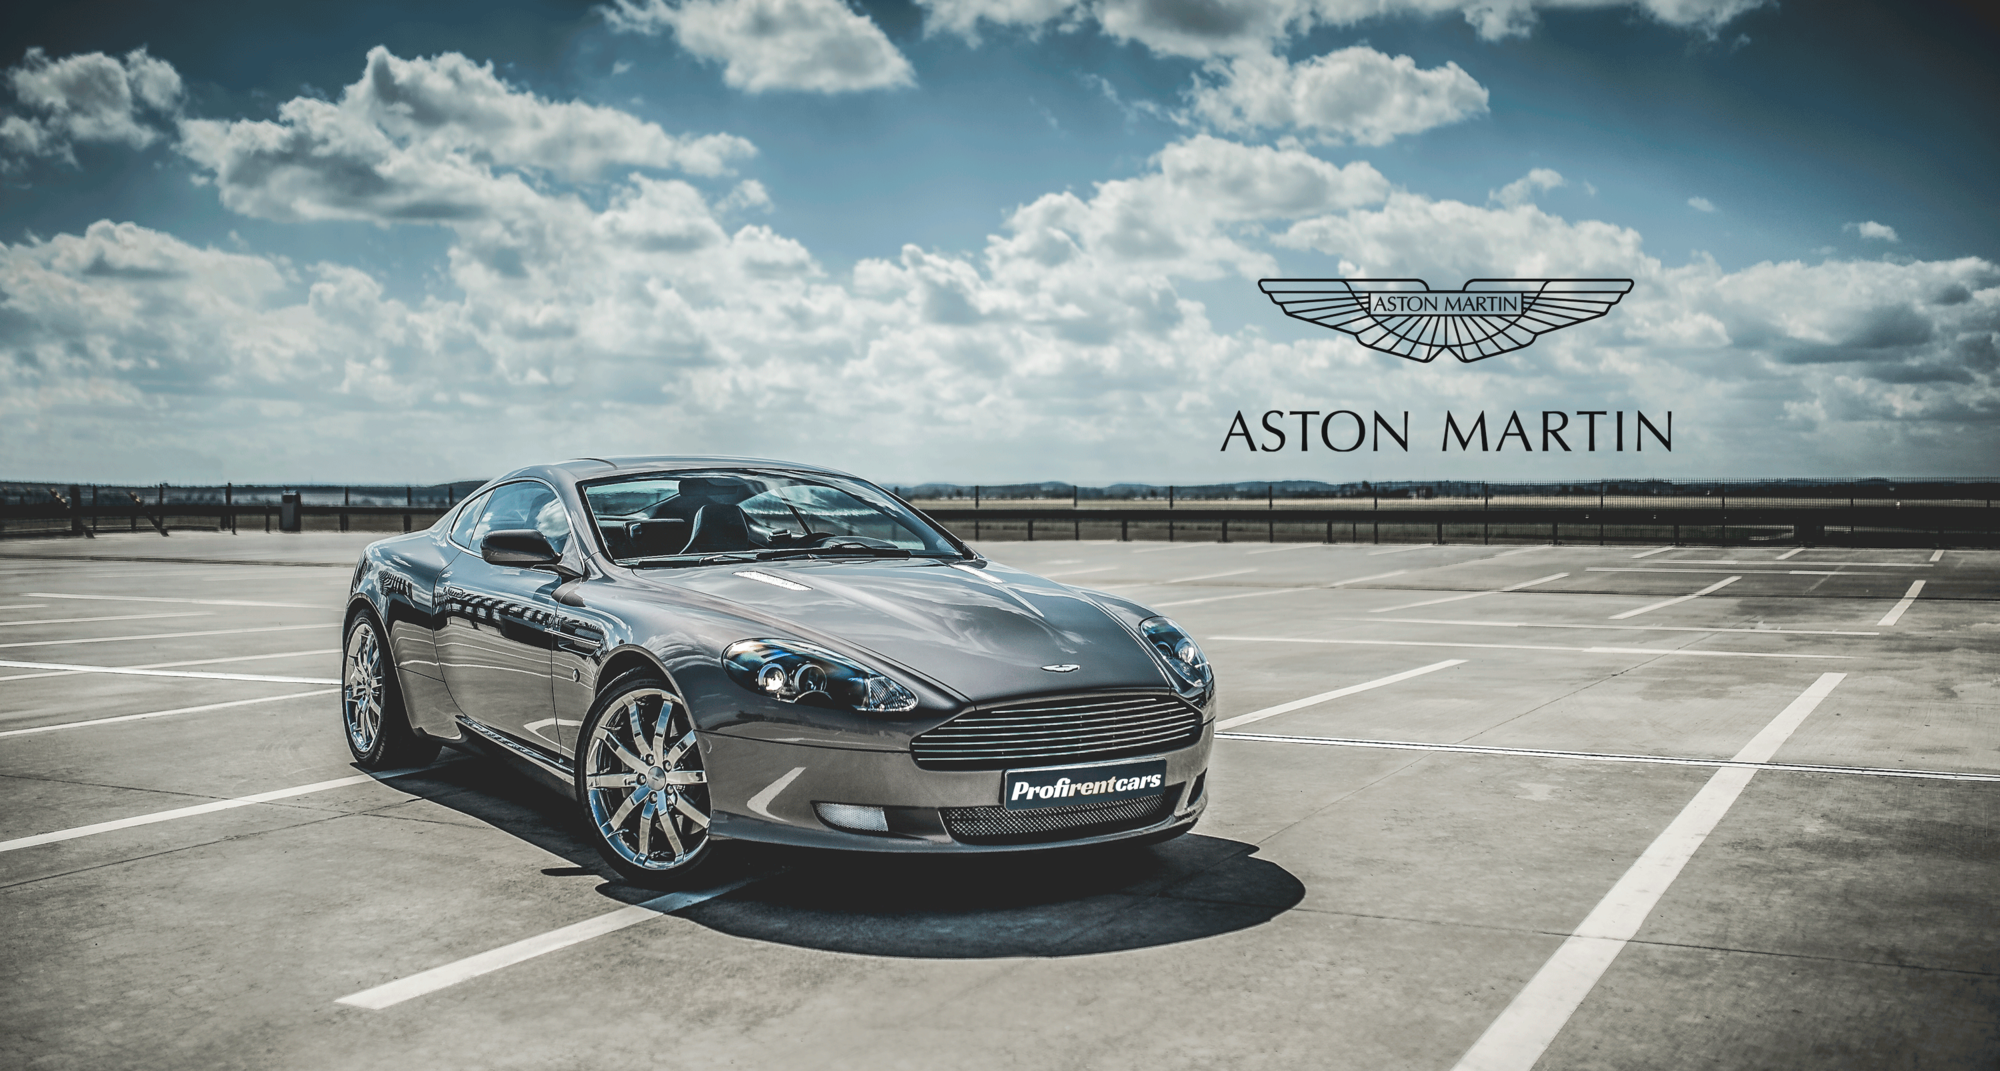 aston martin db9s - comercial - advert - smikmatorphoto